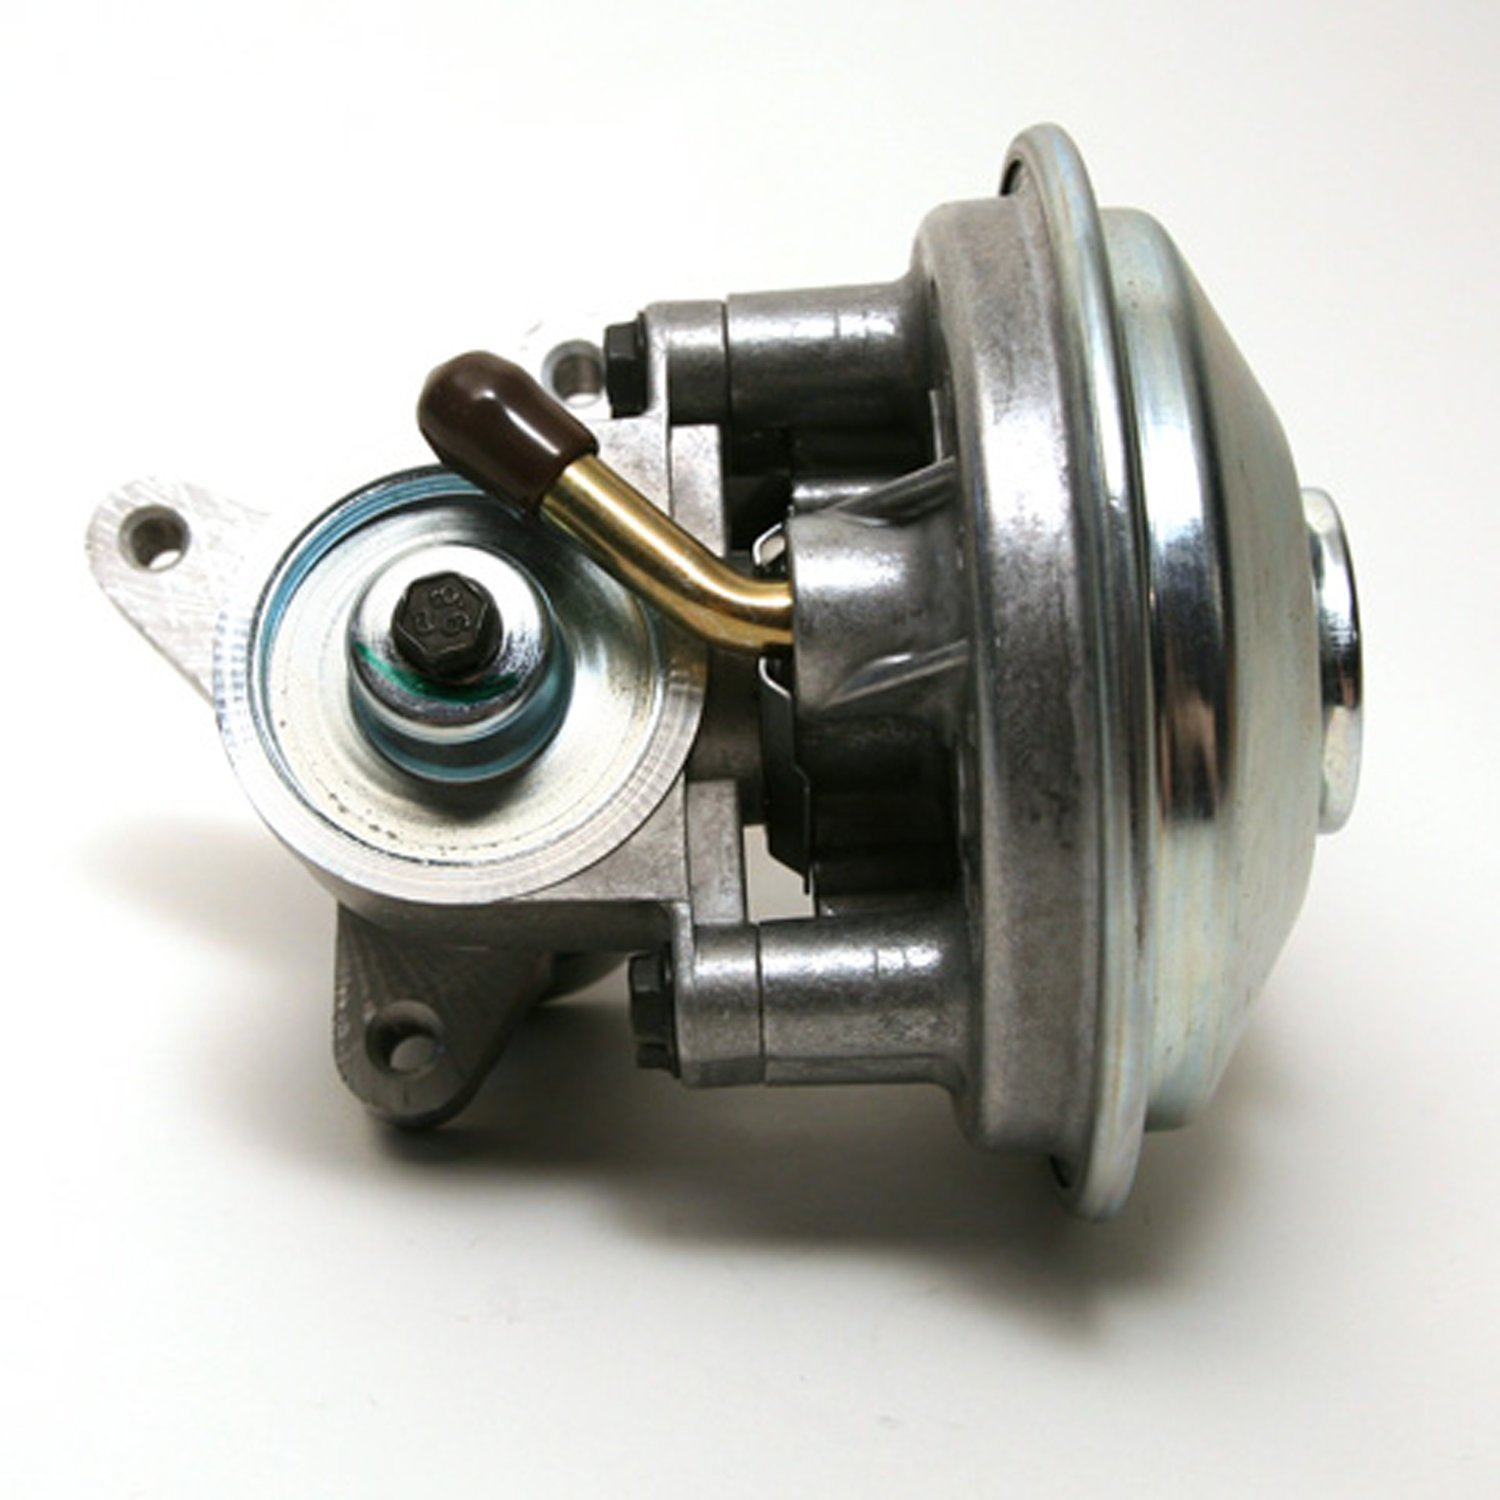 Delphi NLVP1790 Vacuum Pump and Component